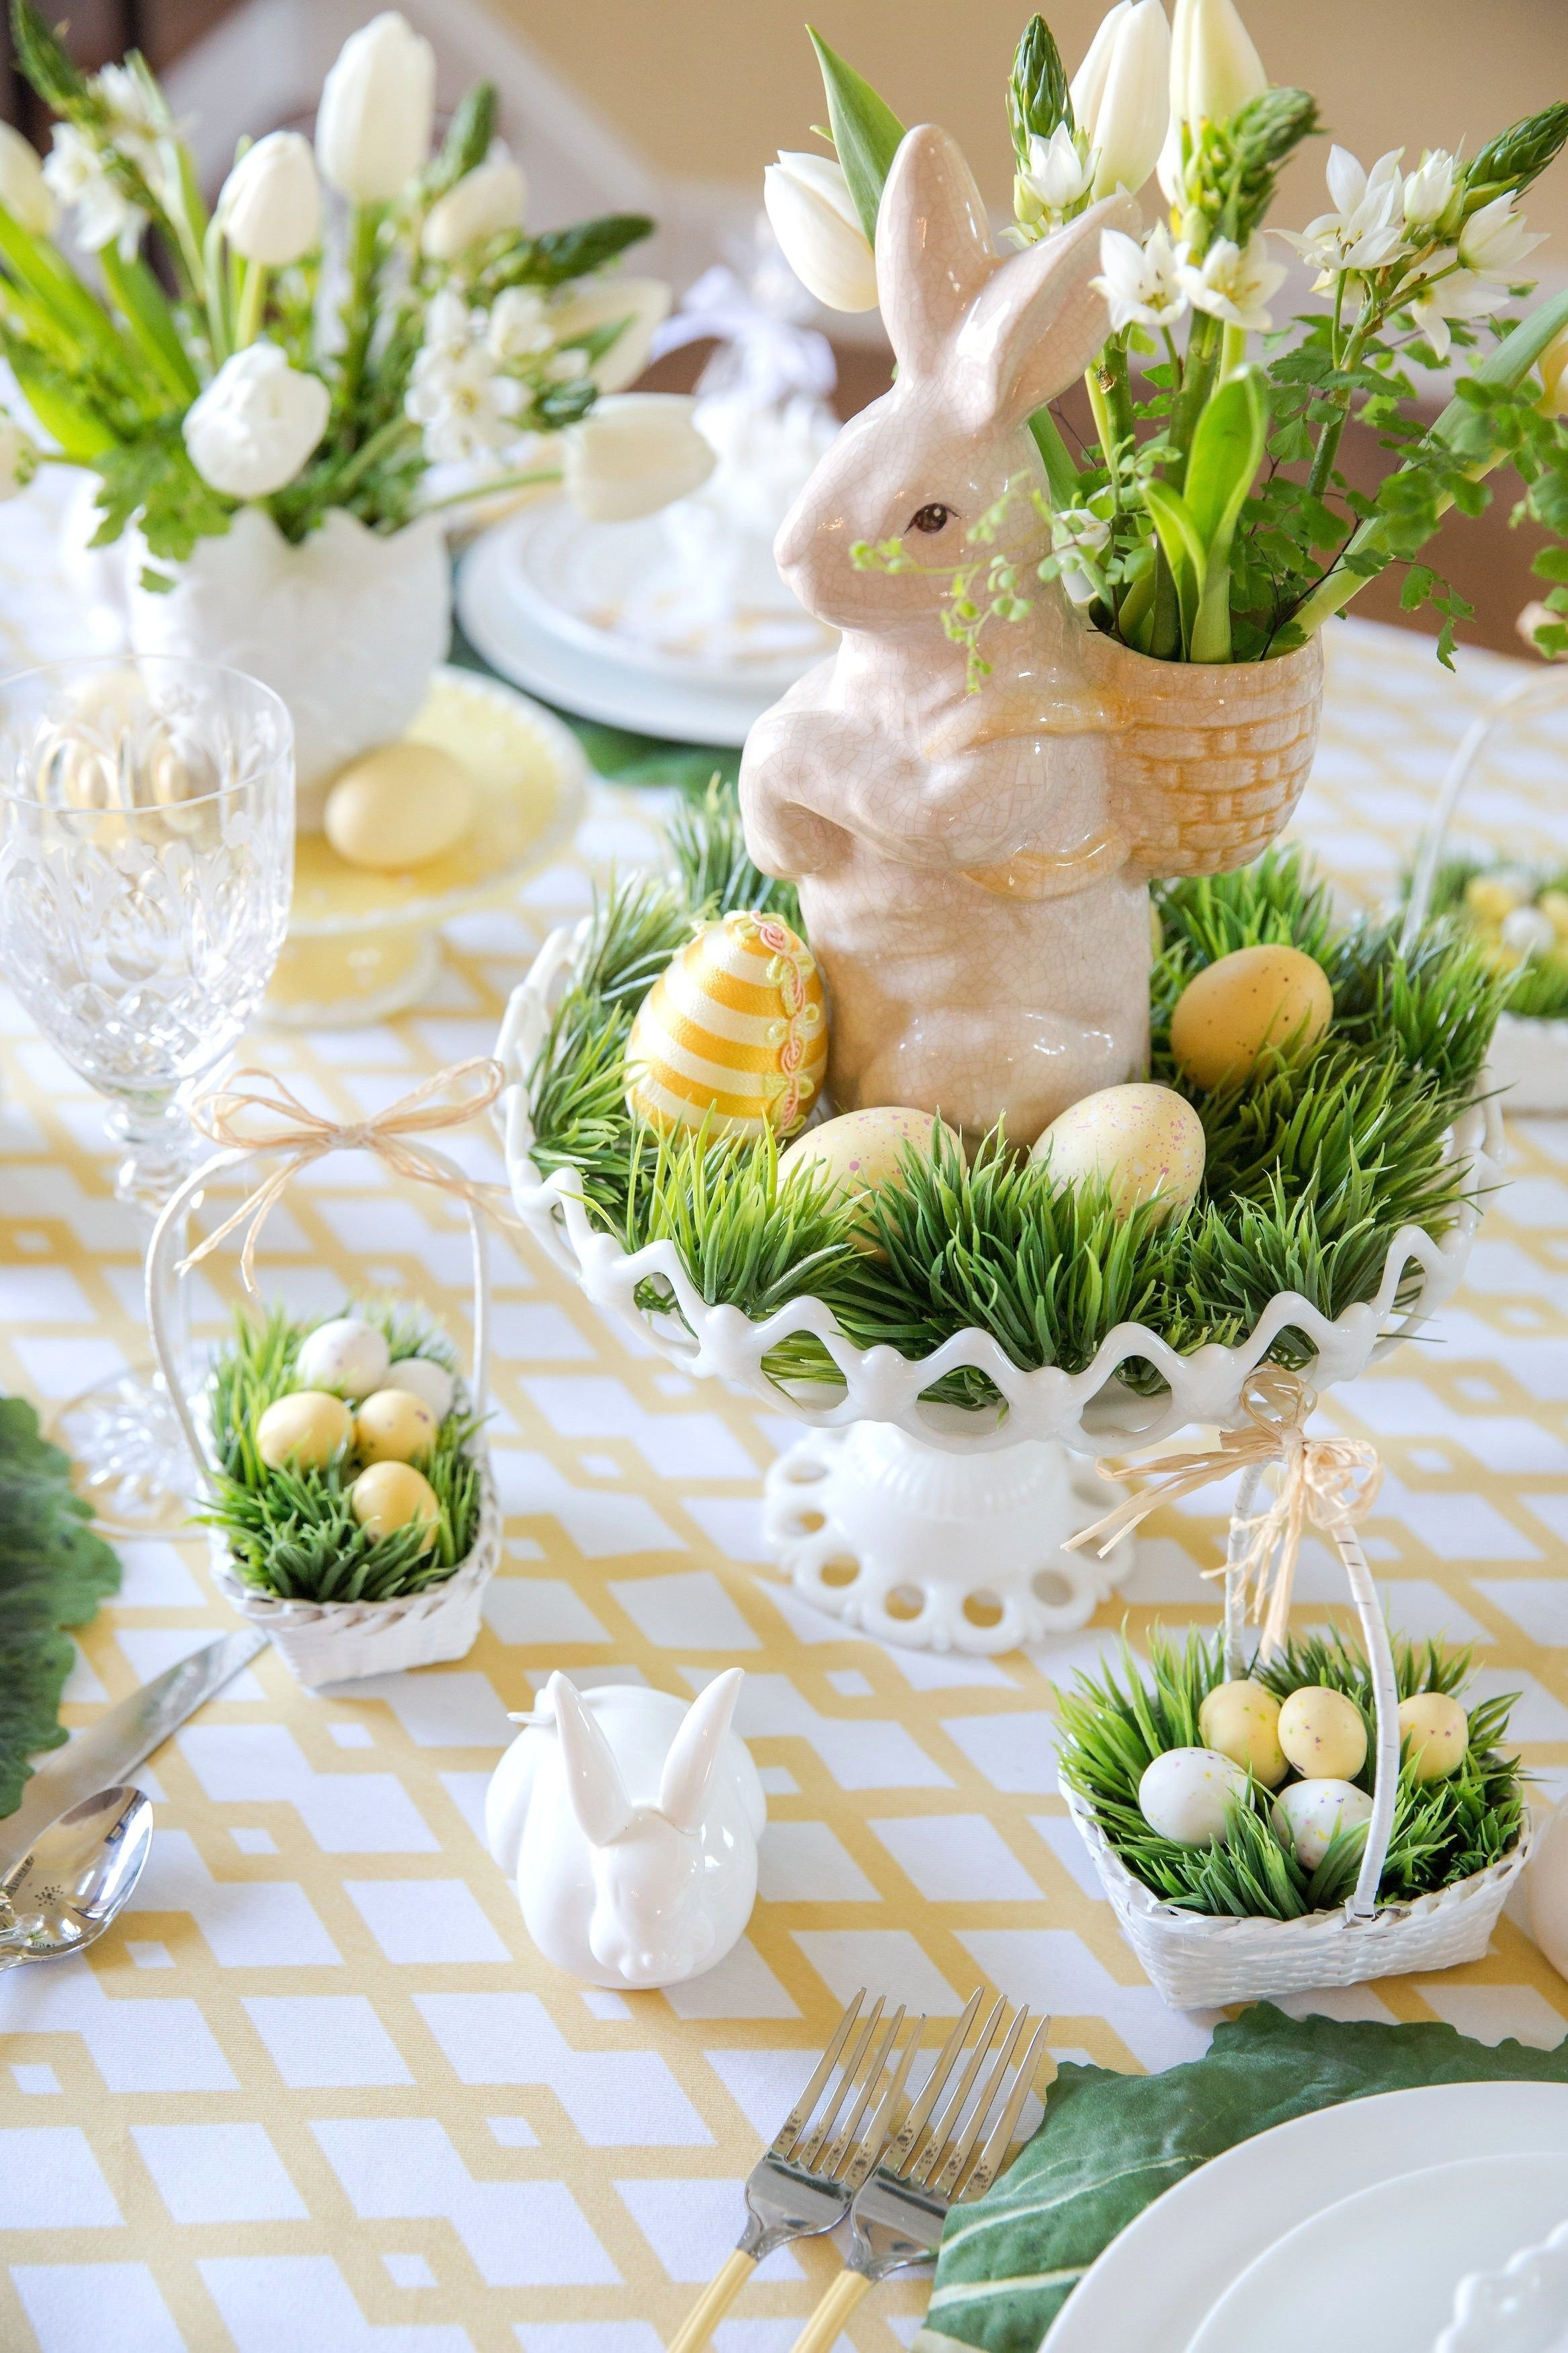 10 Best Easter Decorating Ideas Table Setting 14 festive holiday tablescapes to inspire you paques deco paques